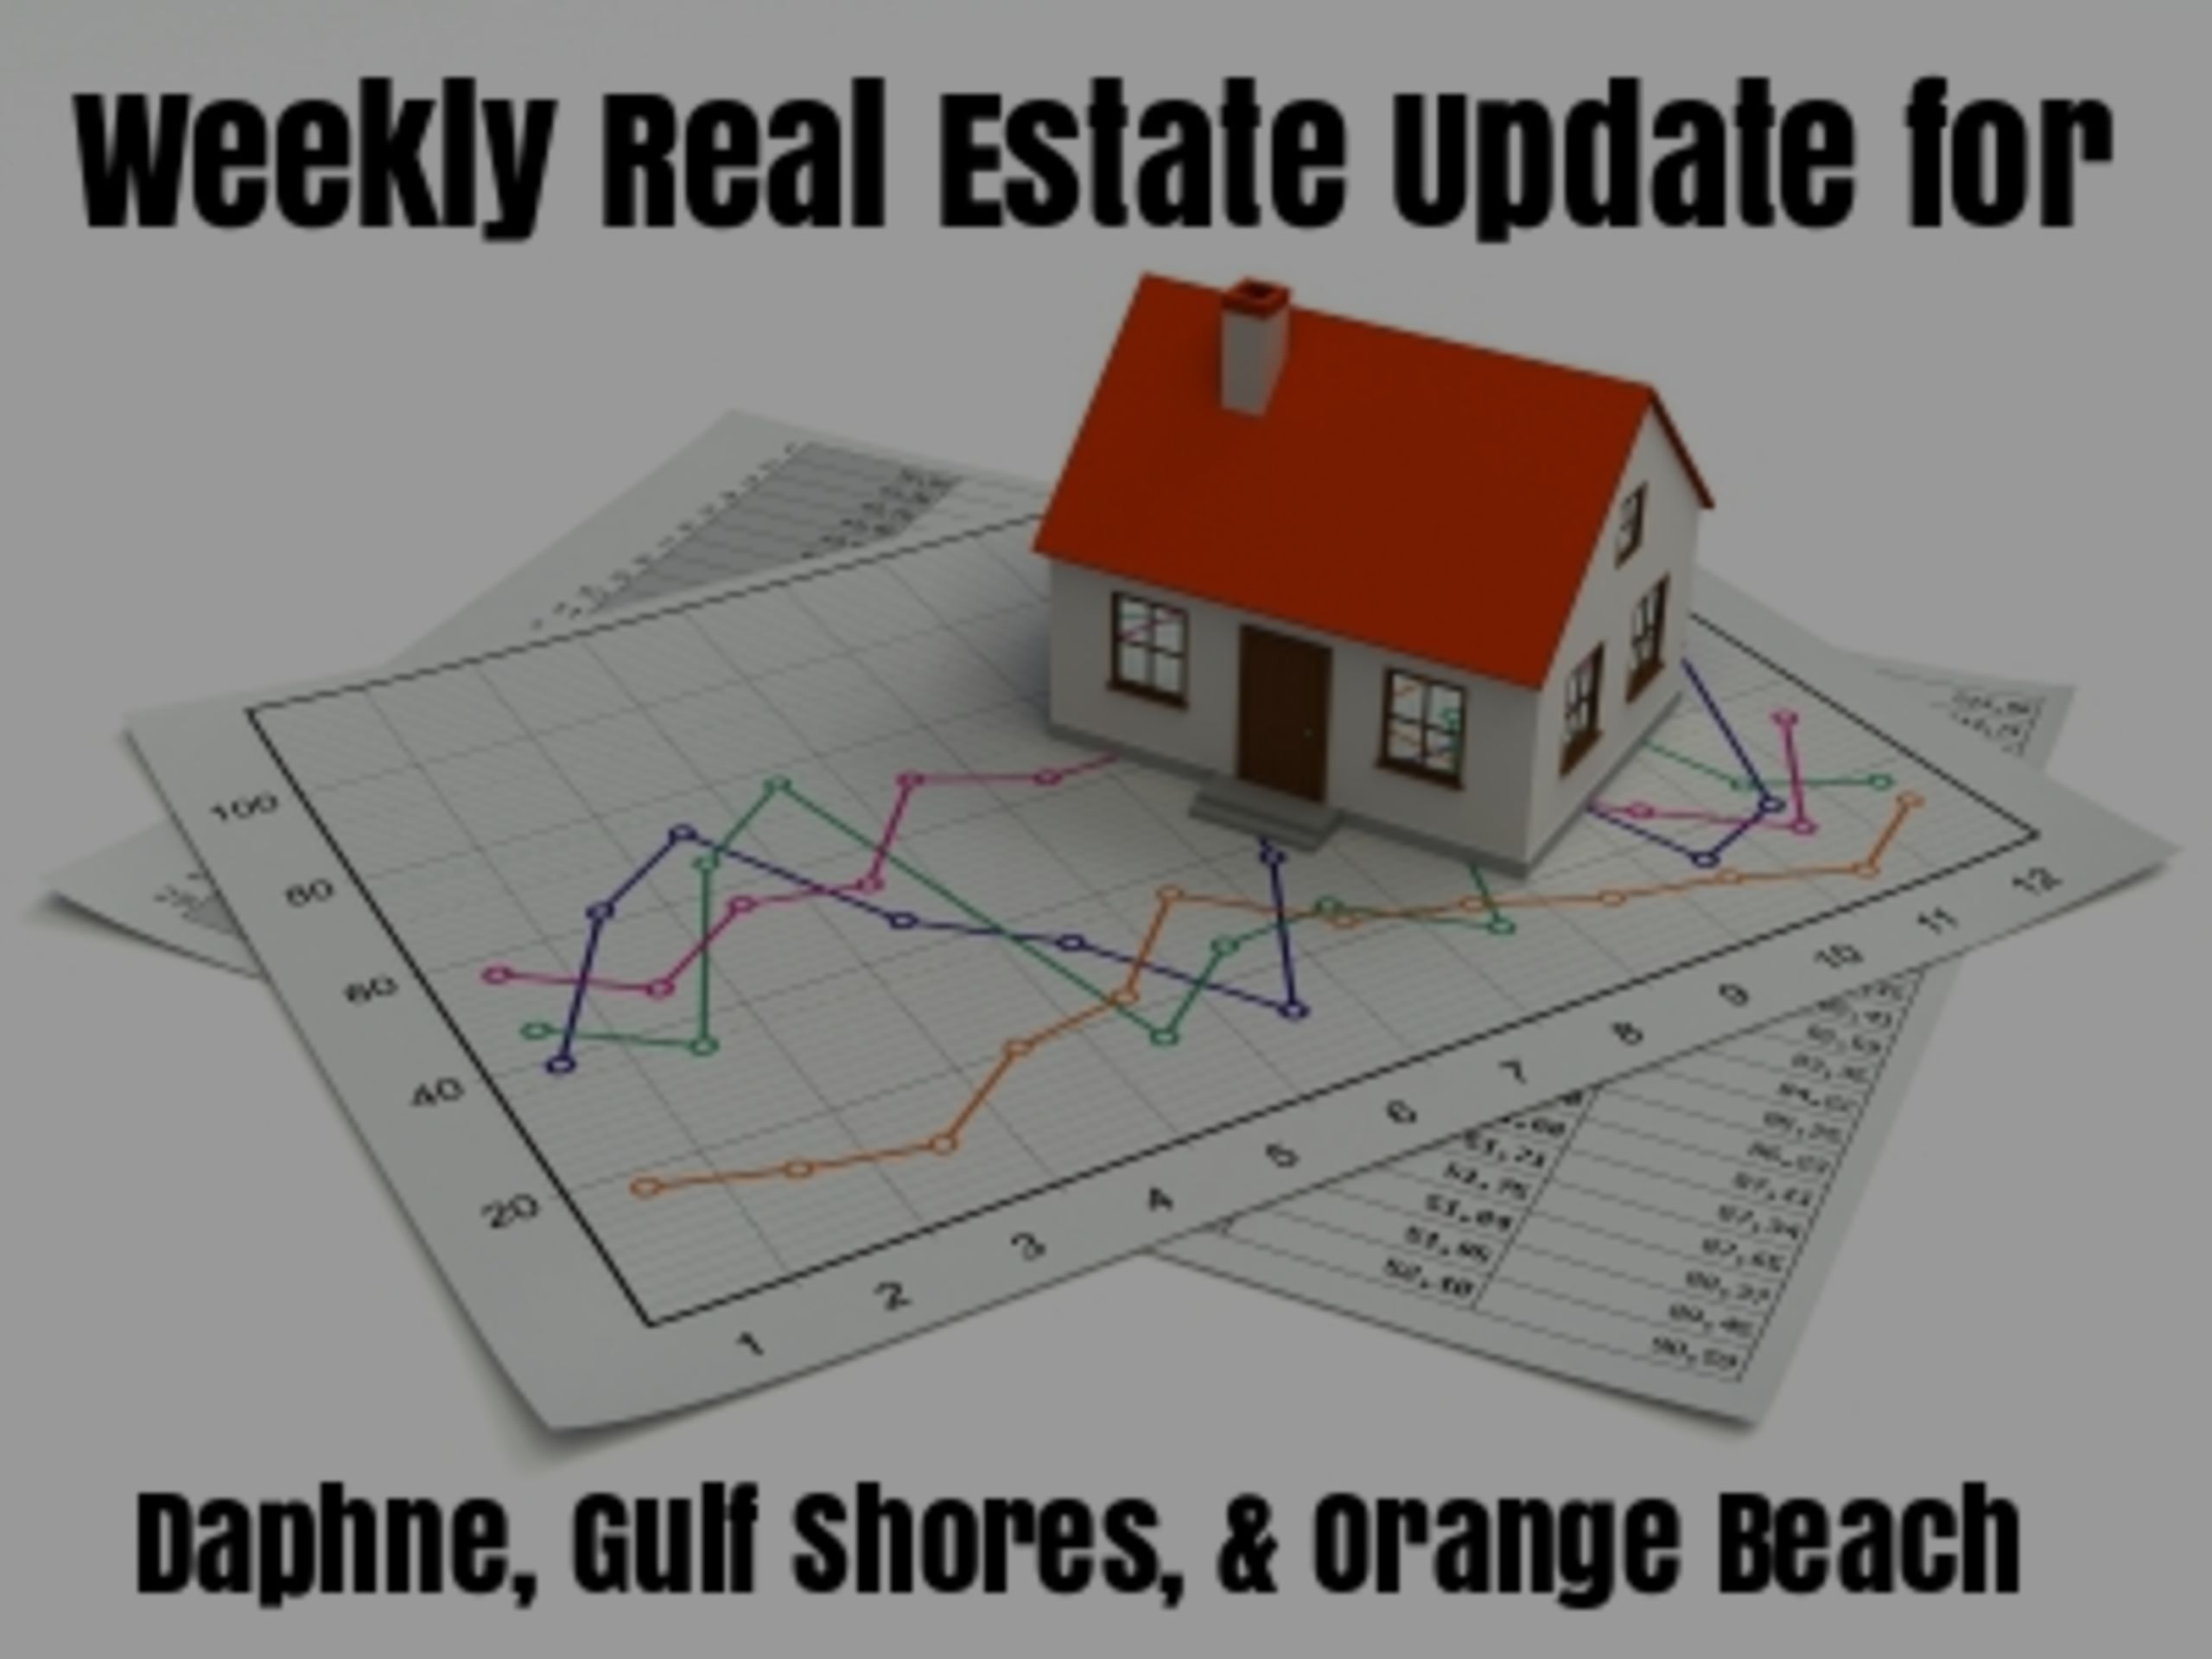 Weekly Real Estate Update – Daphne, Gulf Shores, and Orange Beach – 3/6/17